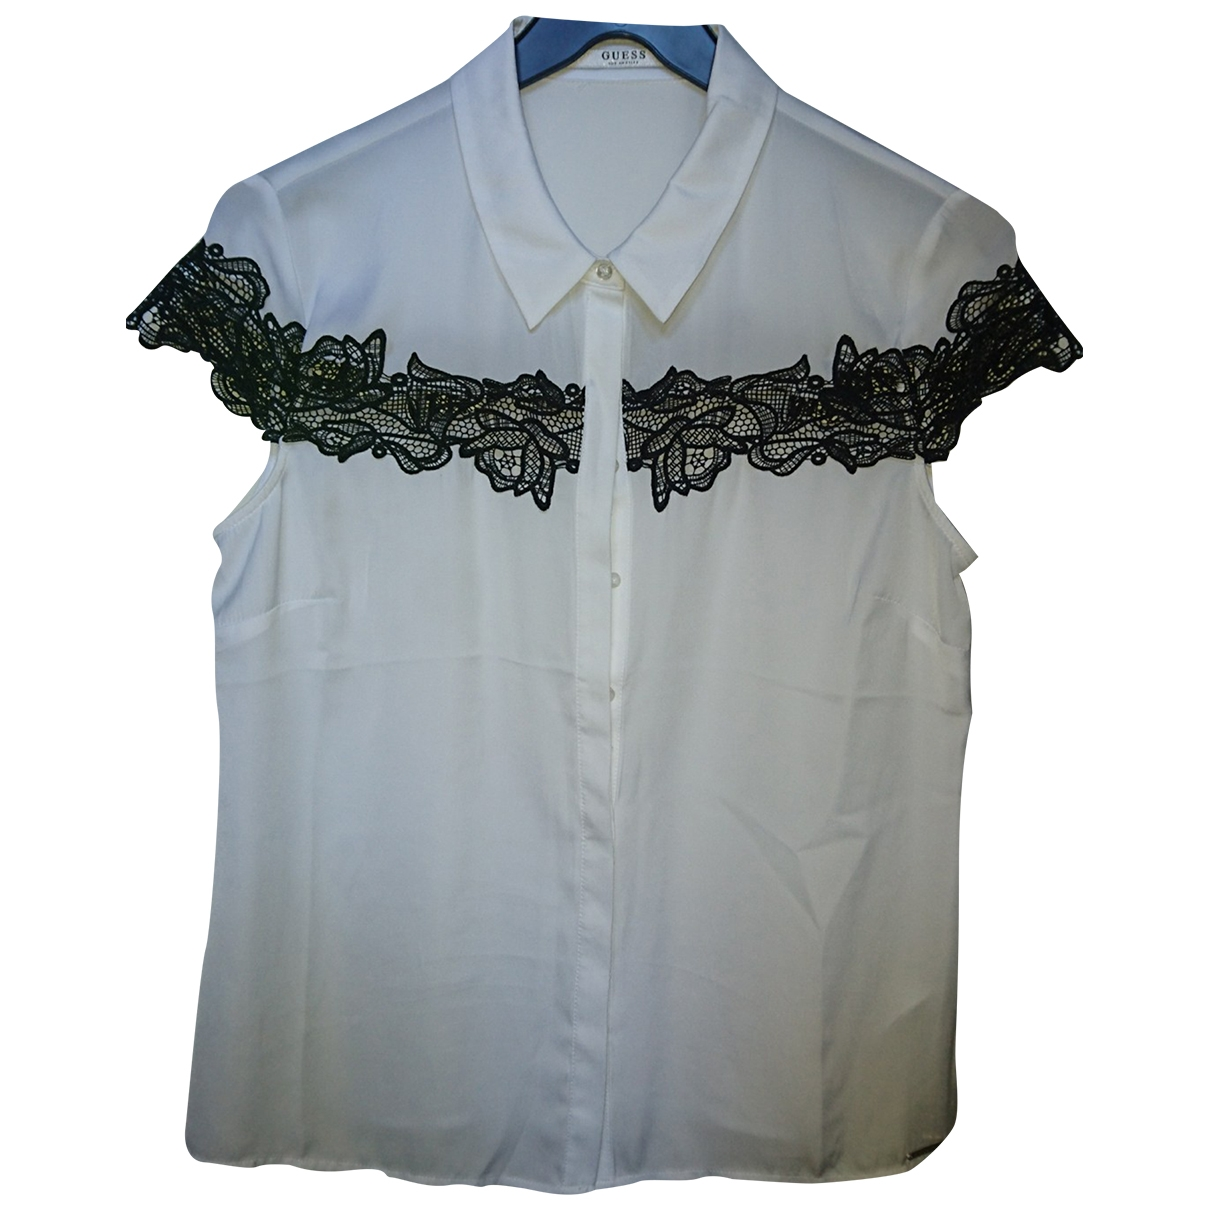 Guess \N White  top for Women S International